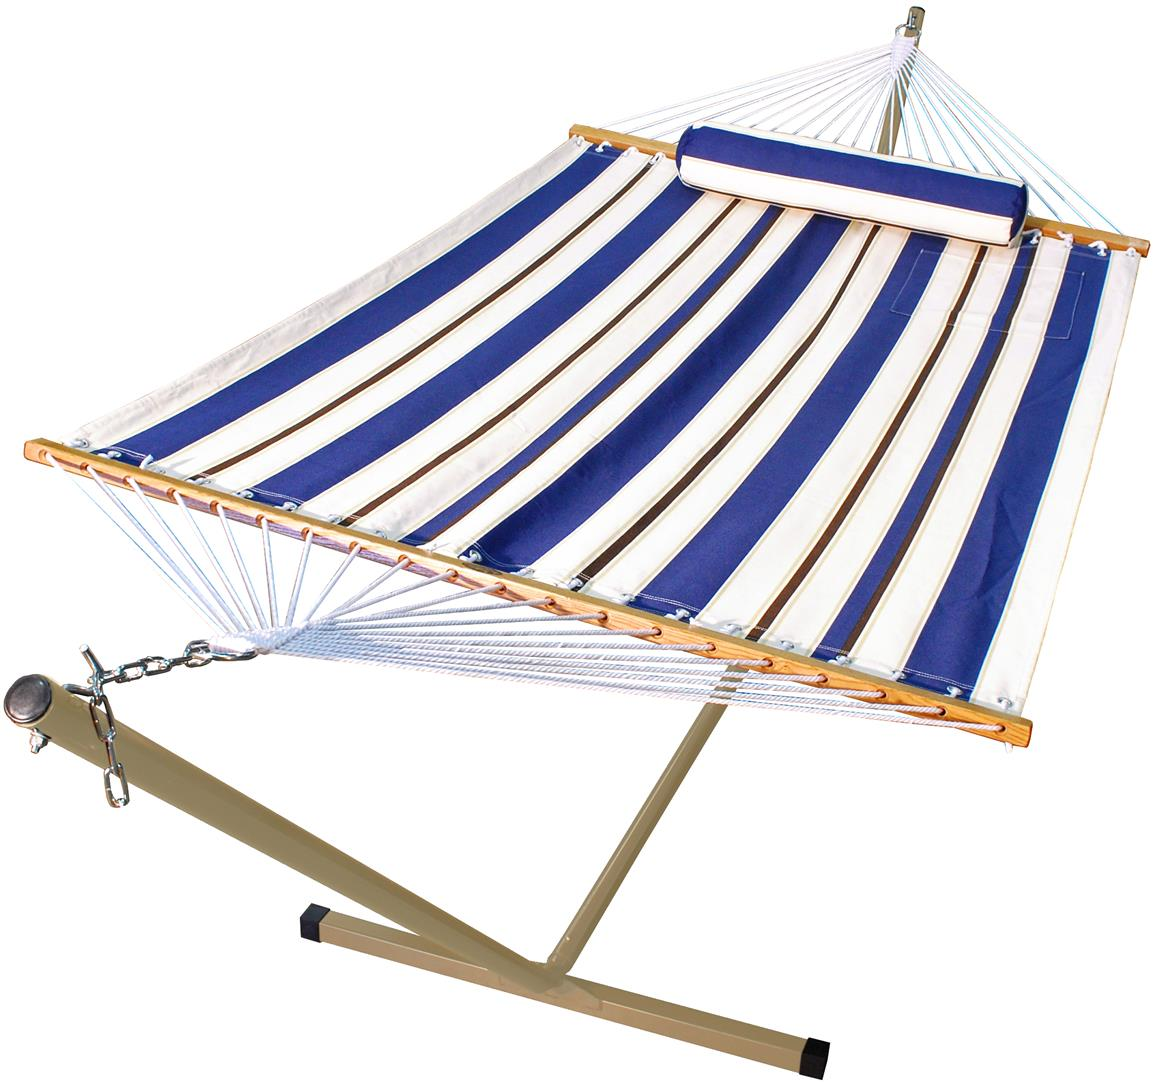 Algoma™ 11 foot Fabric Hammock, Pillow and Stand Combination, Blue / White